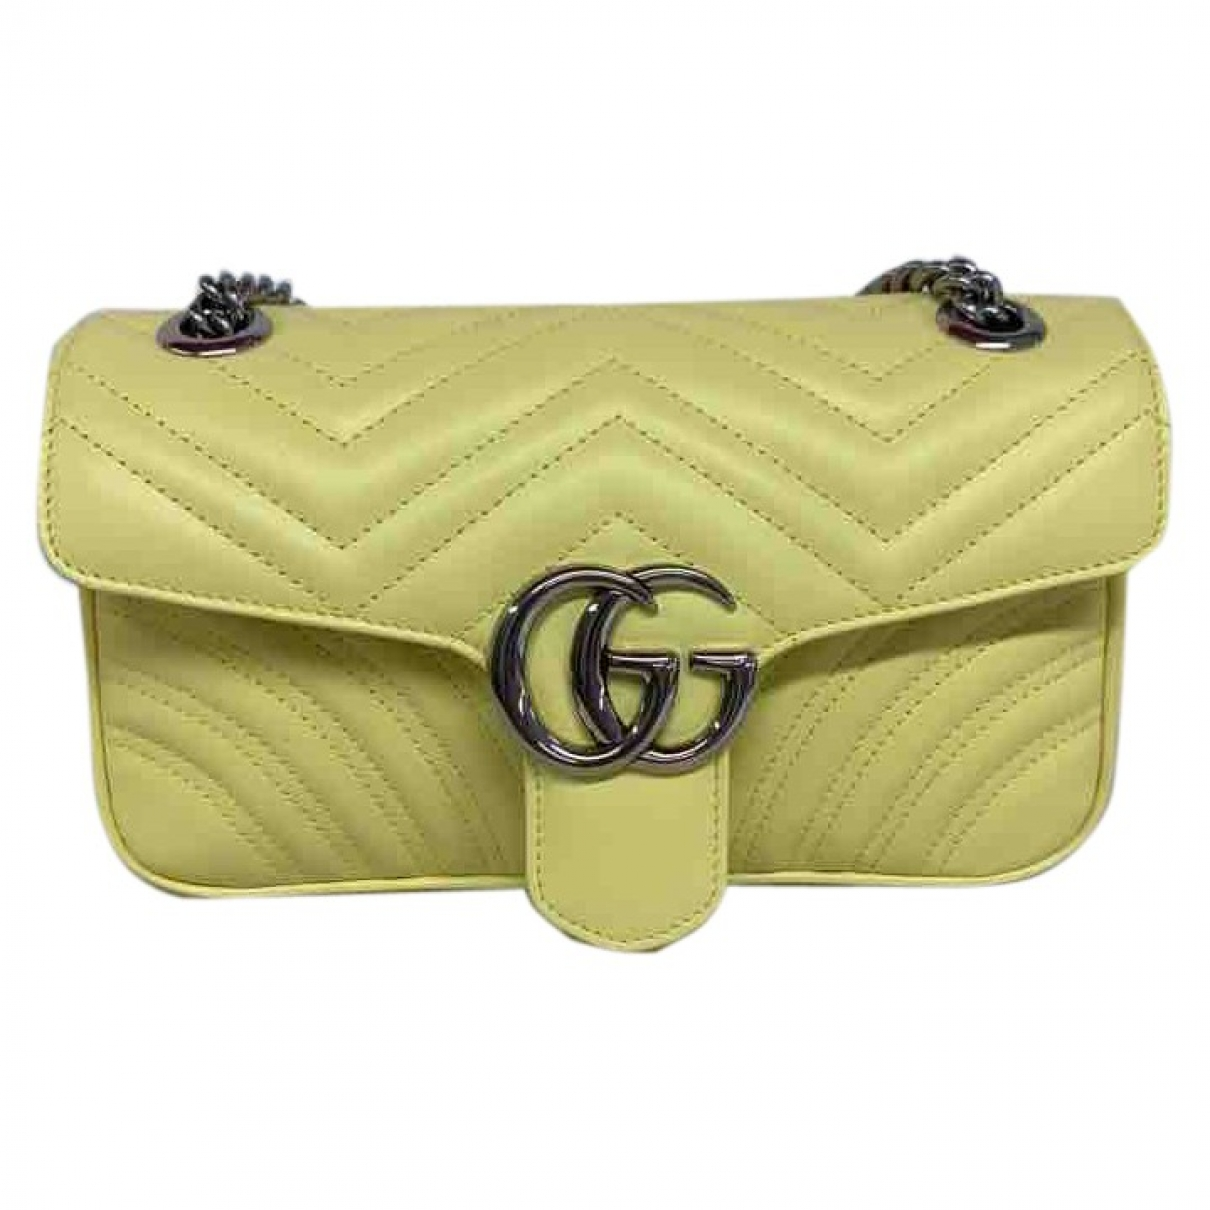 Gucci Marmont Yellow Leather handbag for Women \N